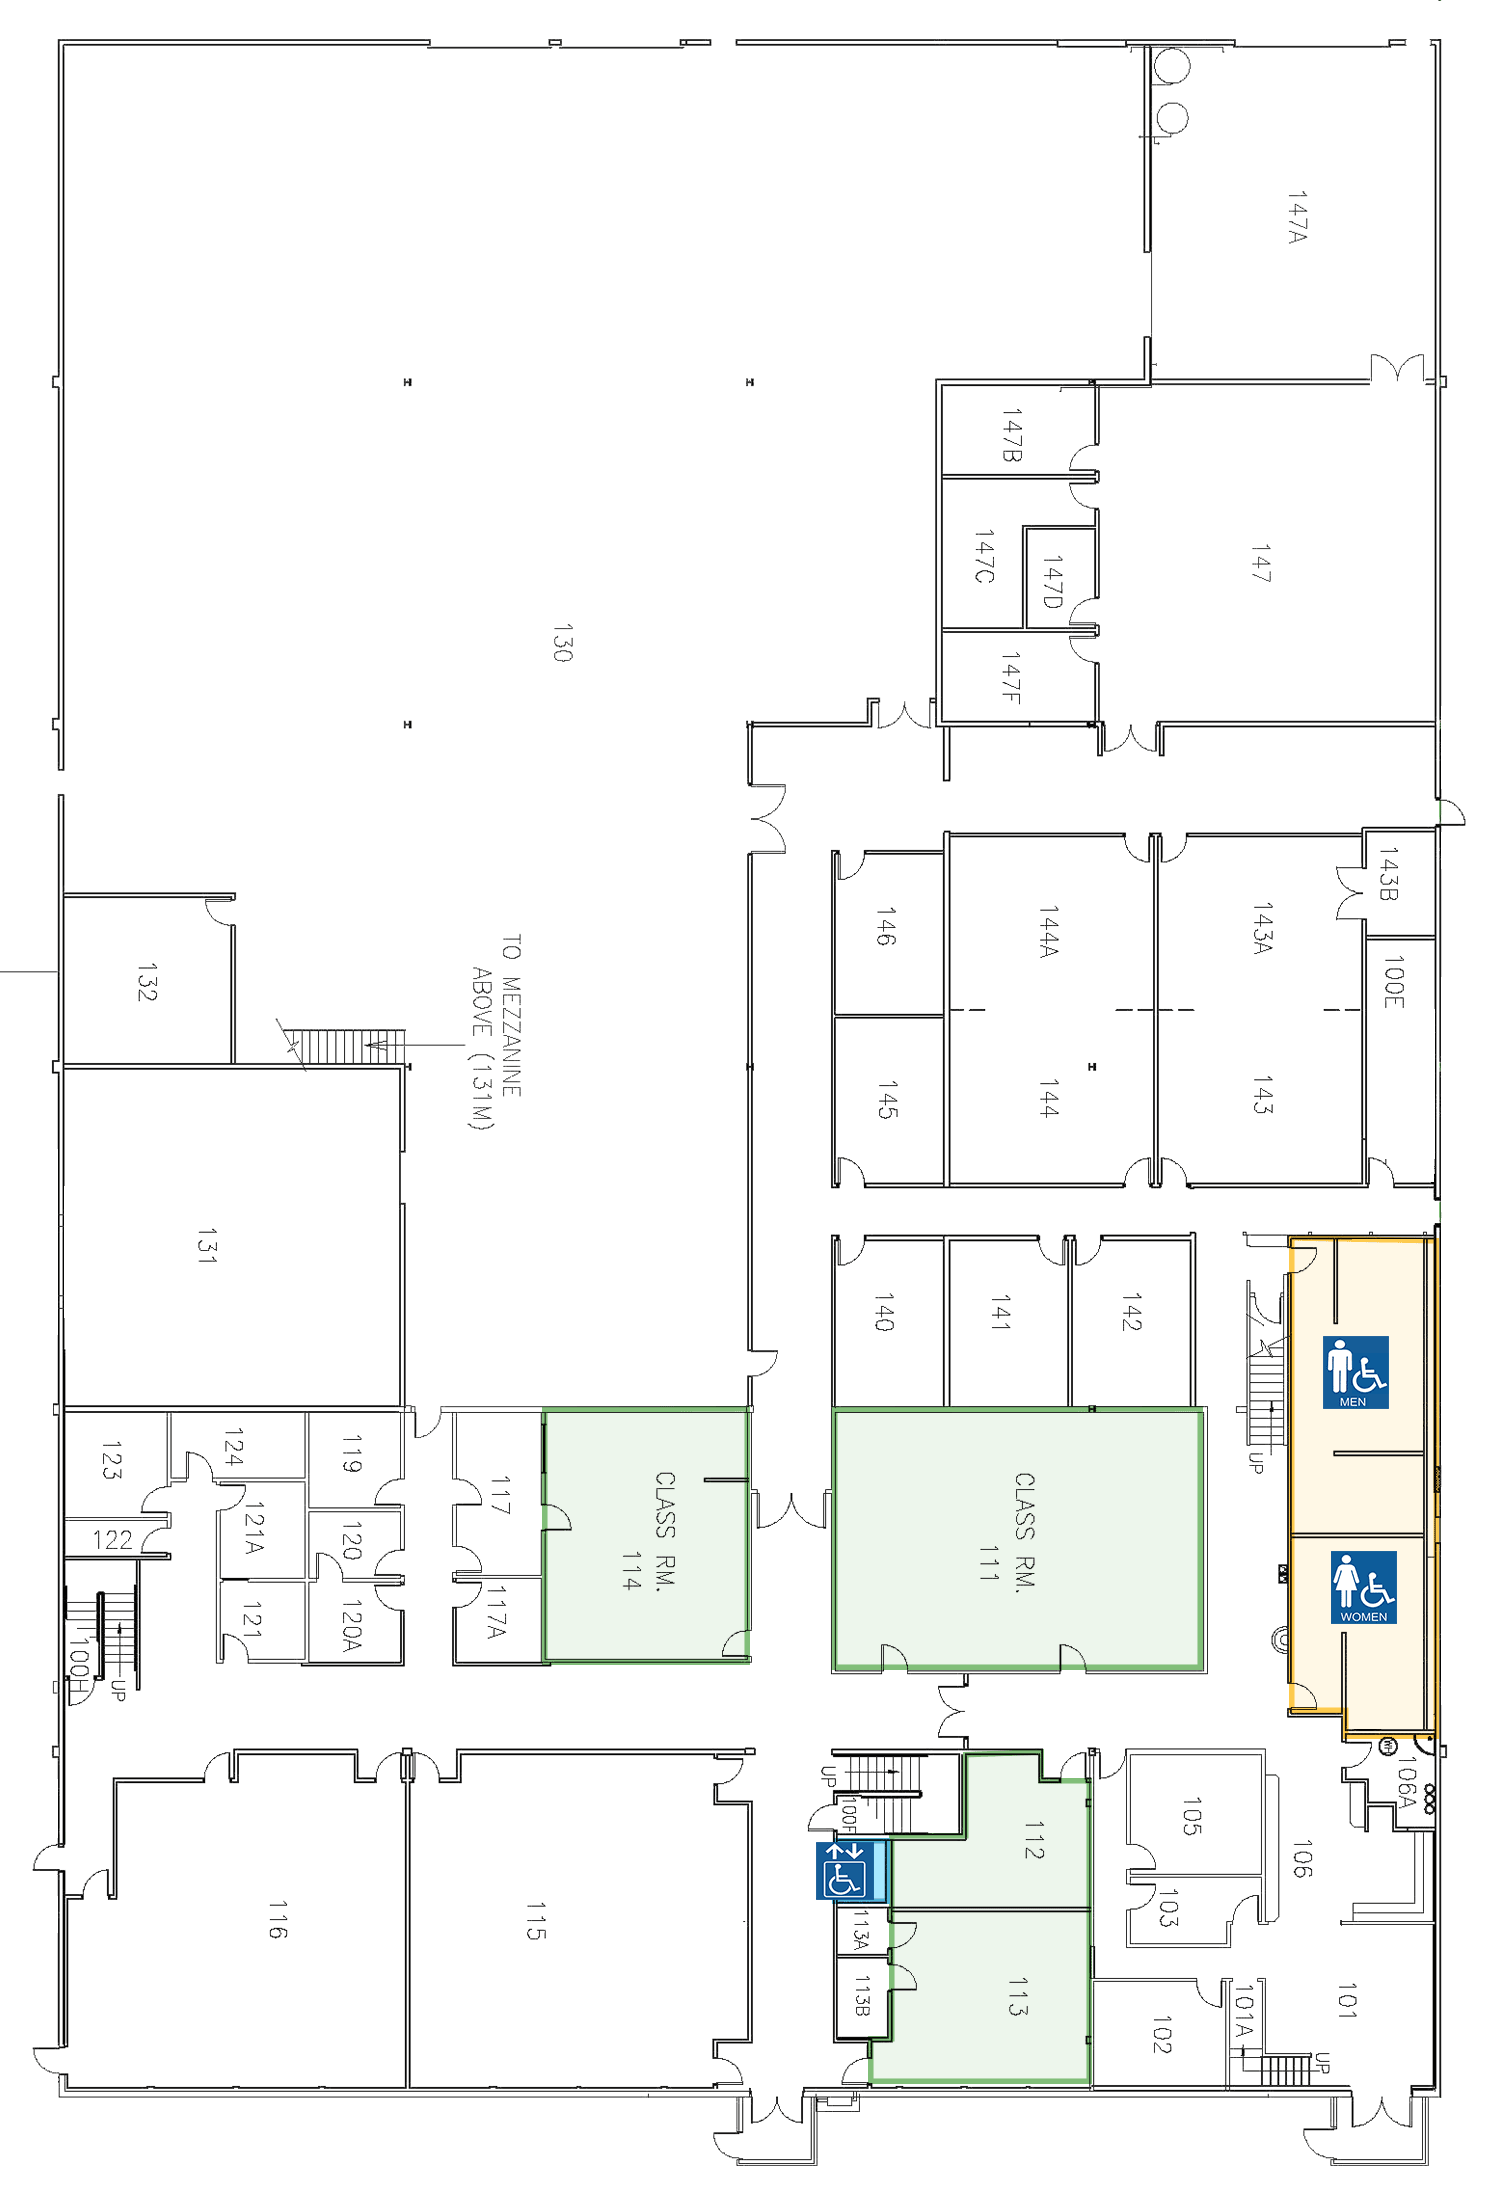 Emergency Services Building Level 1